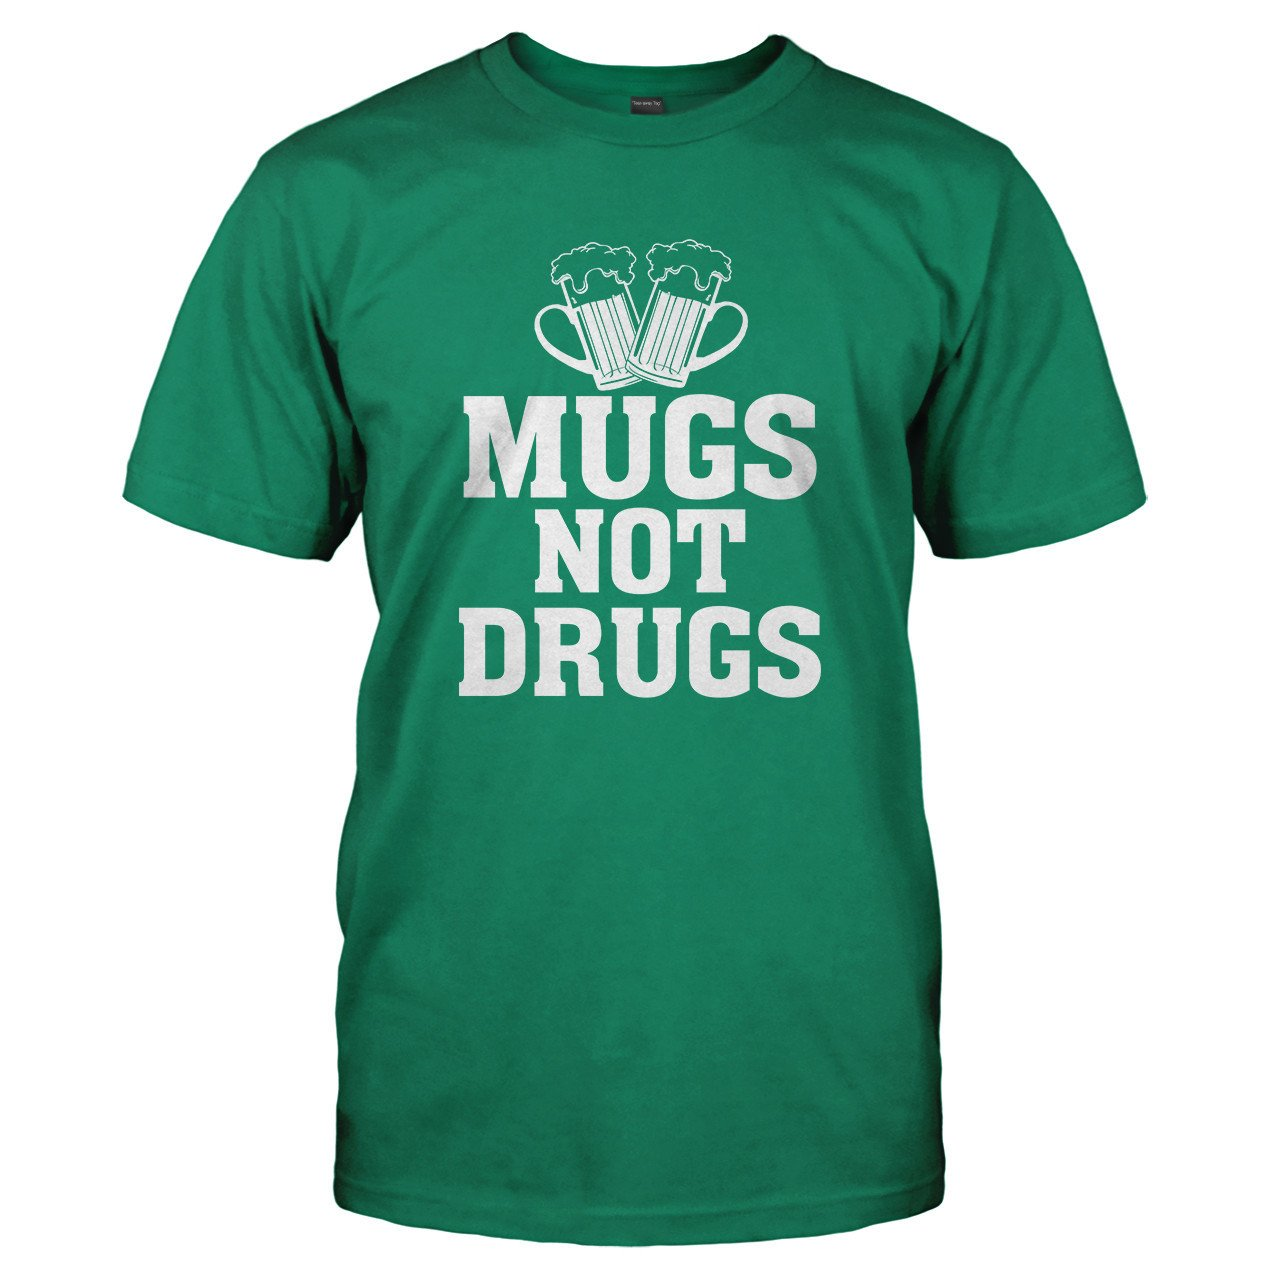 Mugs Not Drugs - T Shirt